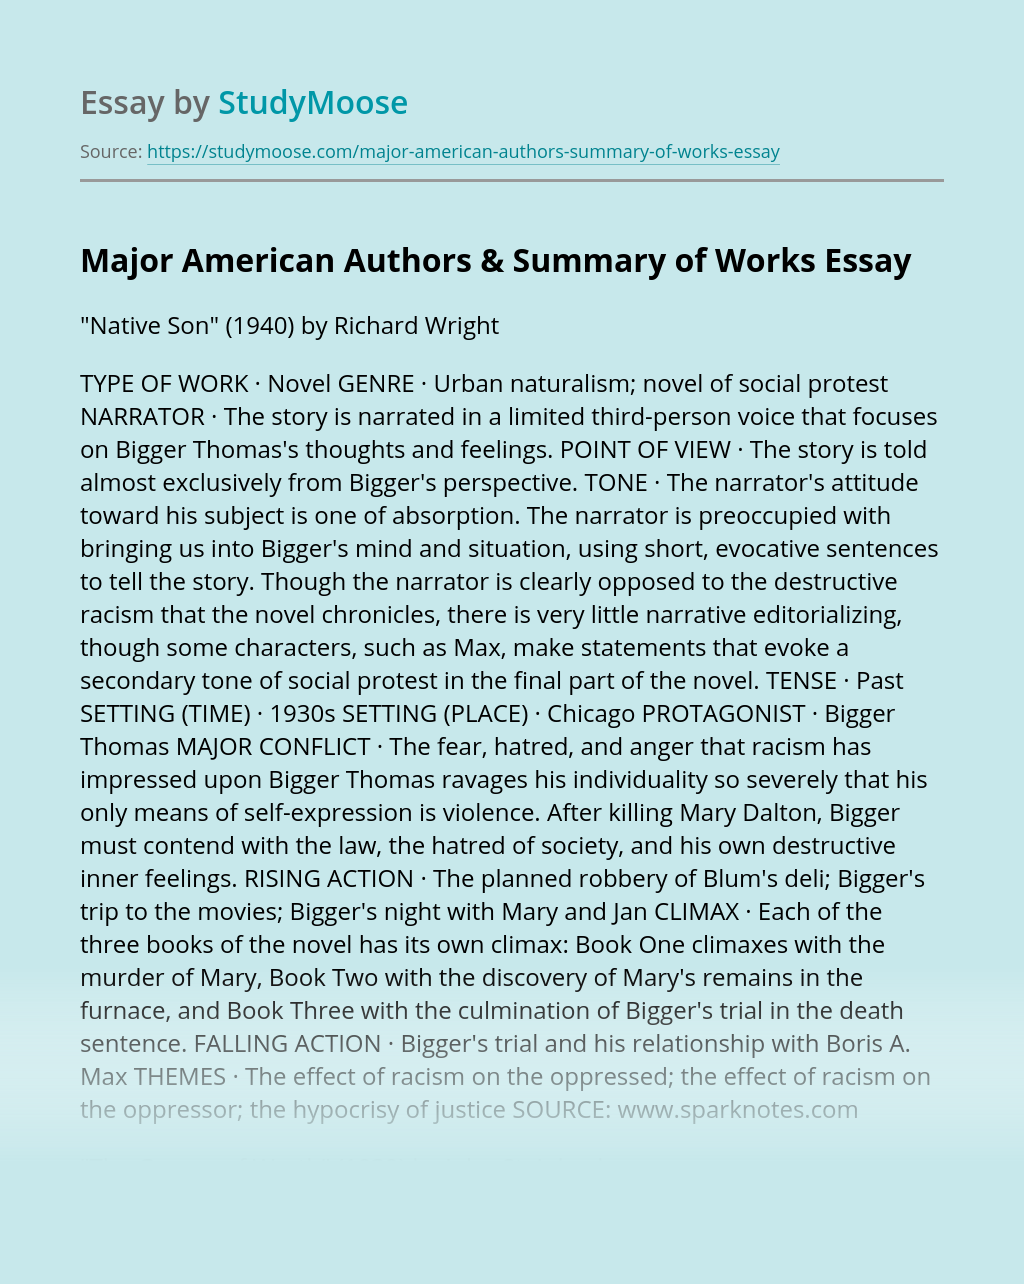 Major American Authors & Summary of Works